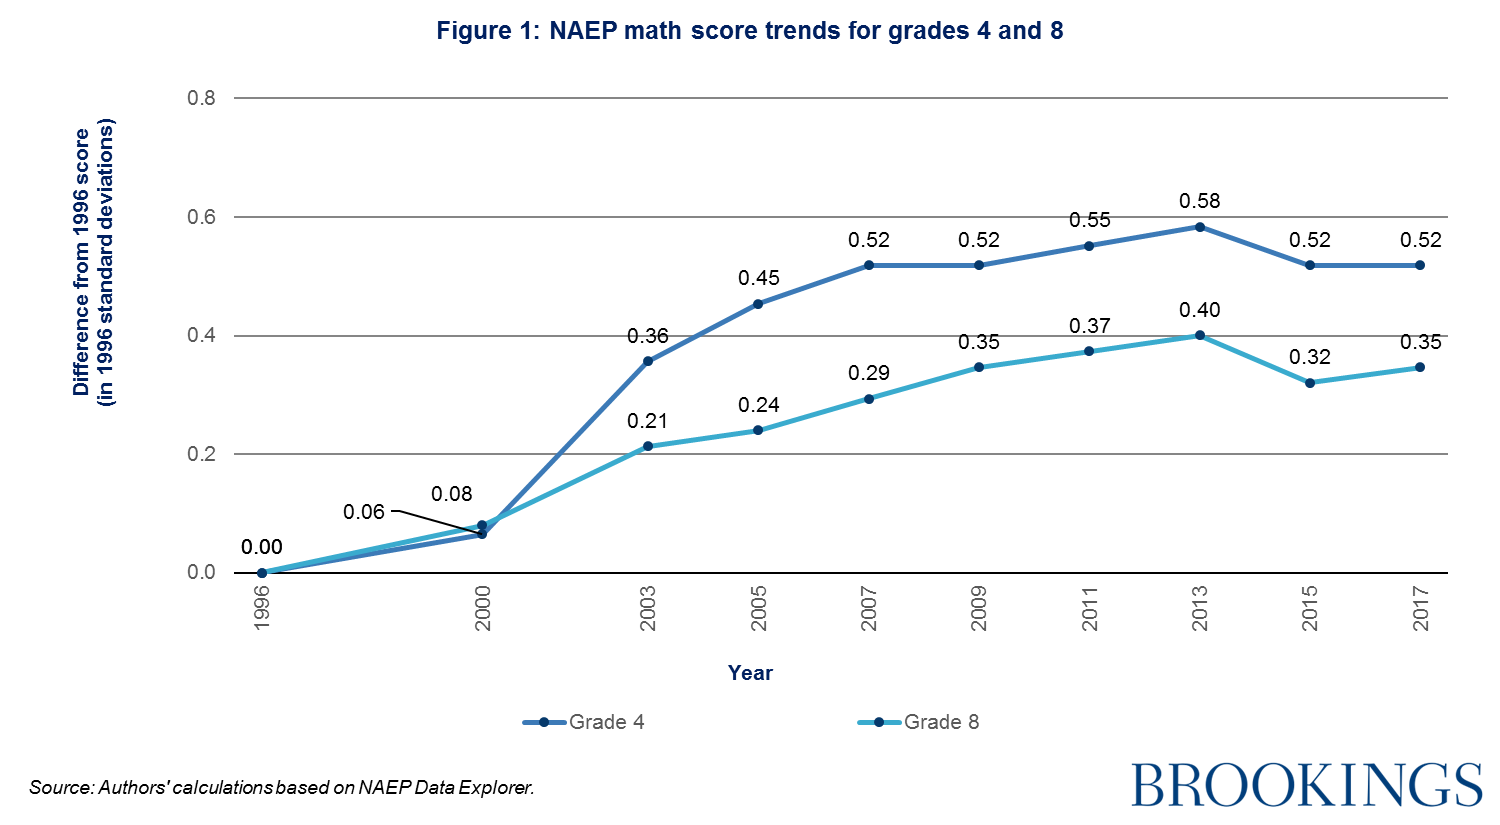 Study Shows Kids Test Scores Drop When >> 2018 Brown Center Report On American Education Trends In Naep Math